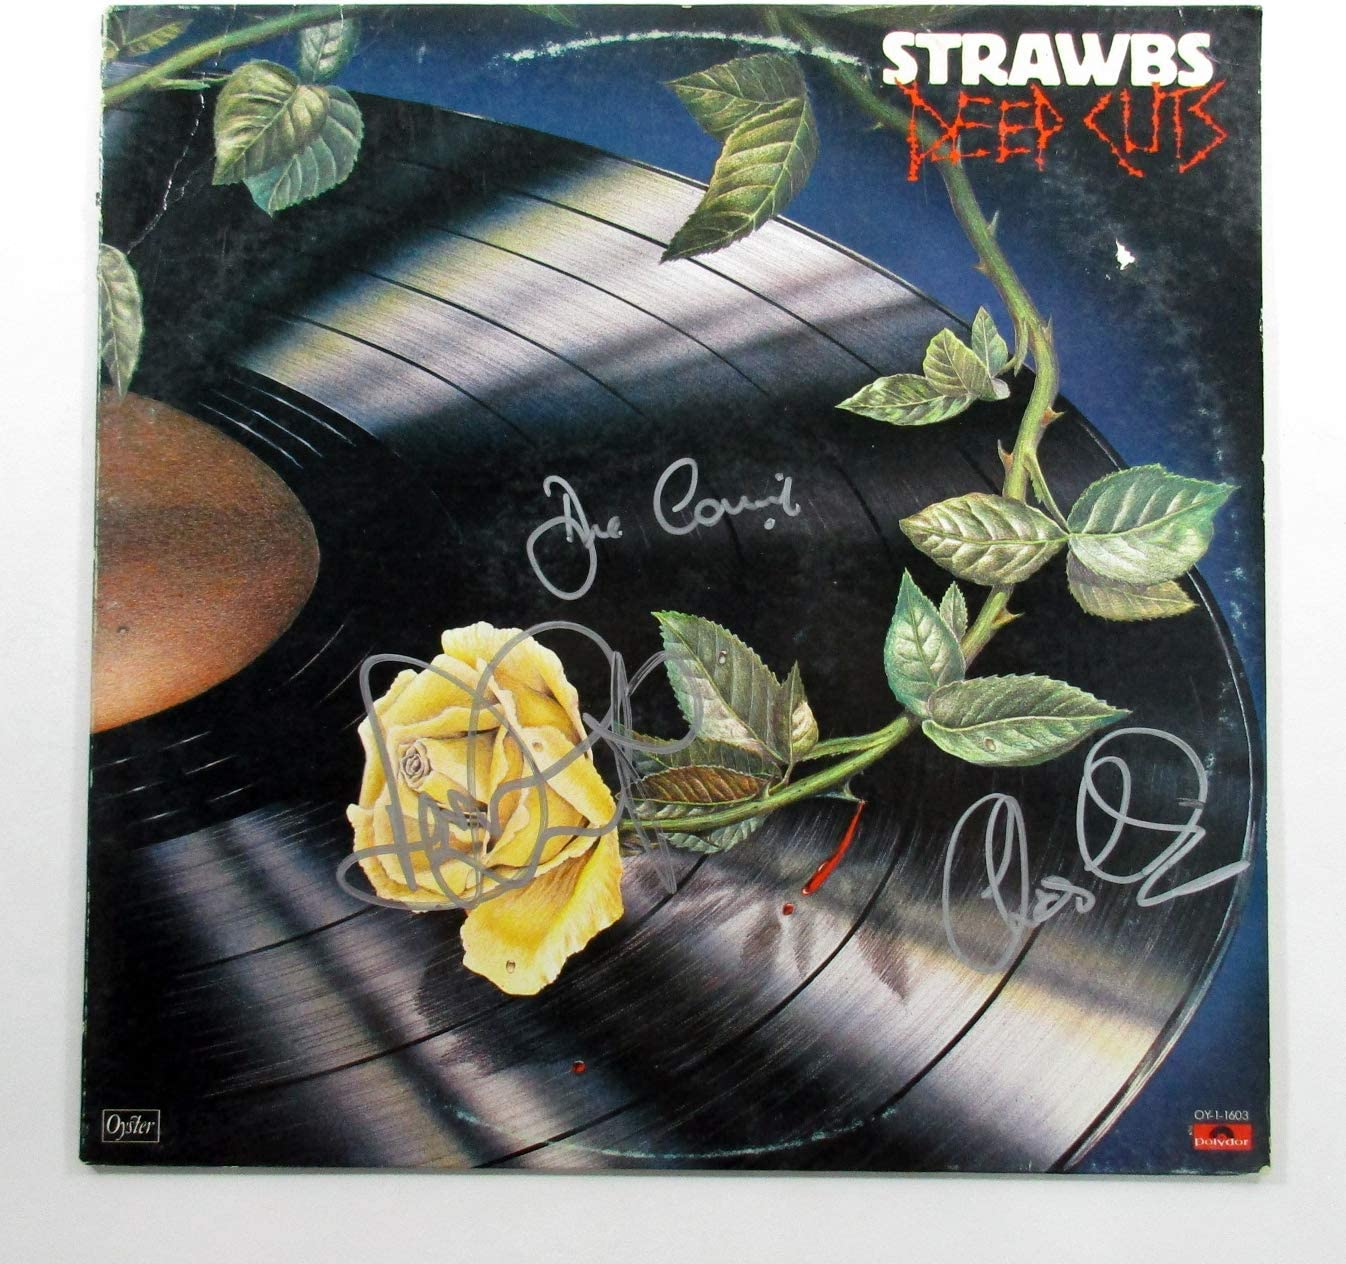 Rapid rise Dave Cousins and 2 Max 87% OFF More Signed Record Album Deep Cuts LP Strawbs